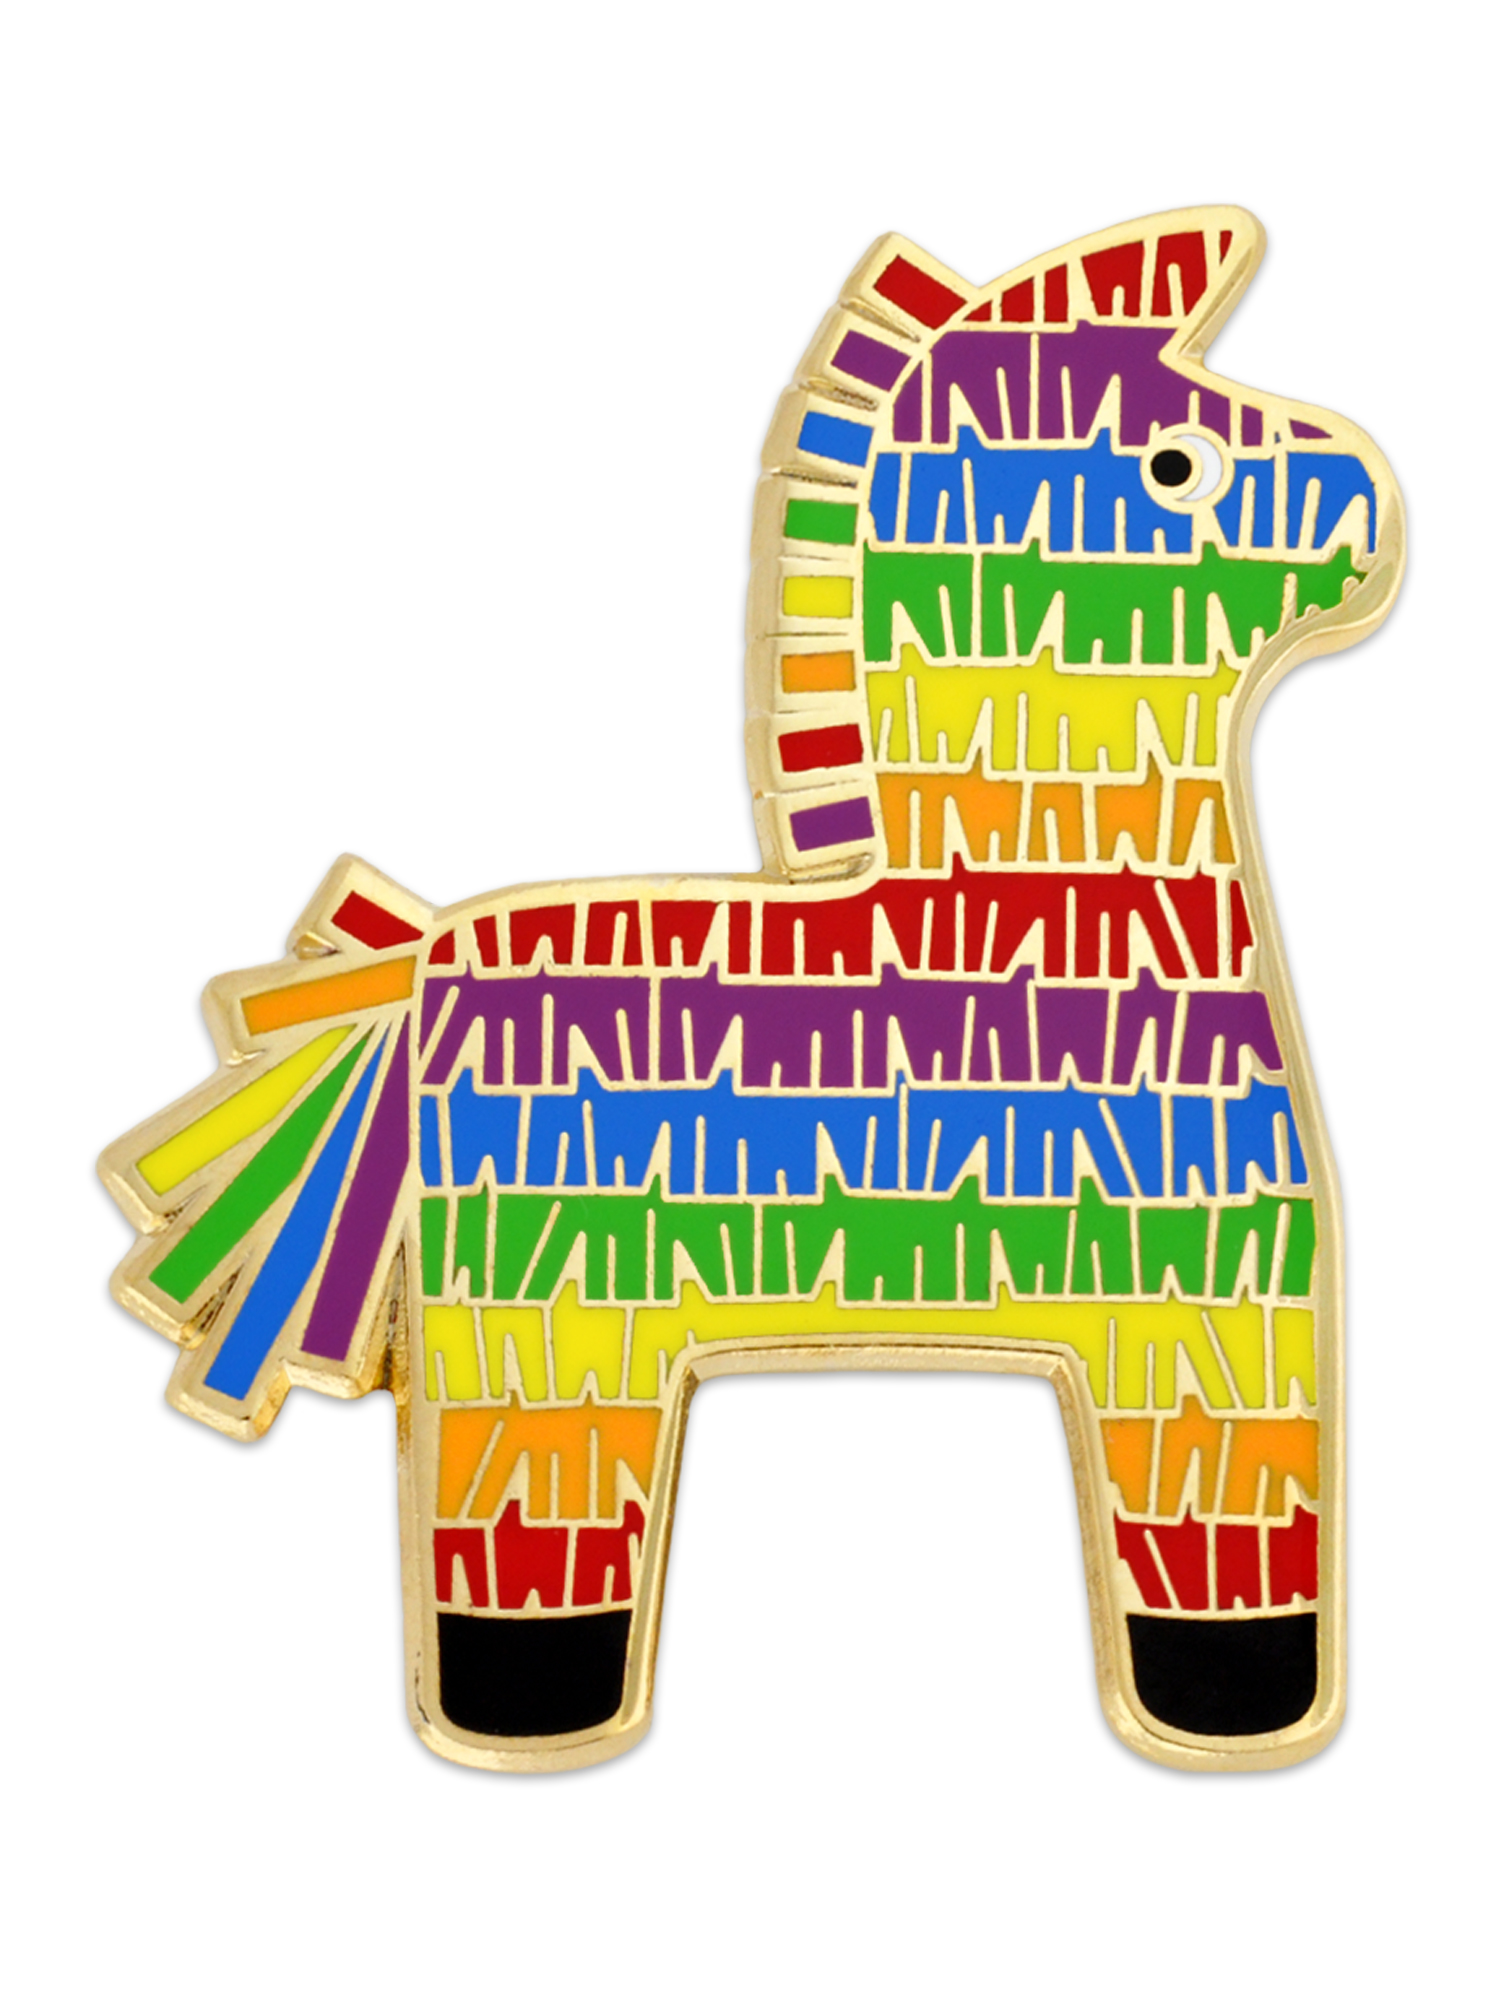 Details about PinMart\'s Spanish Fiesta Donkey Pinata Cinco De Mayo Party  Cute Enamel Lapel Pin.